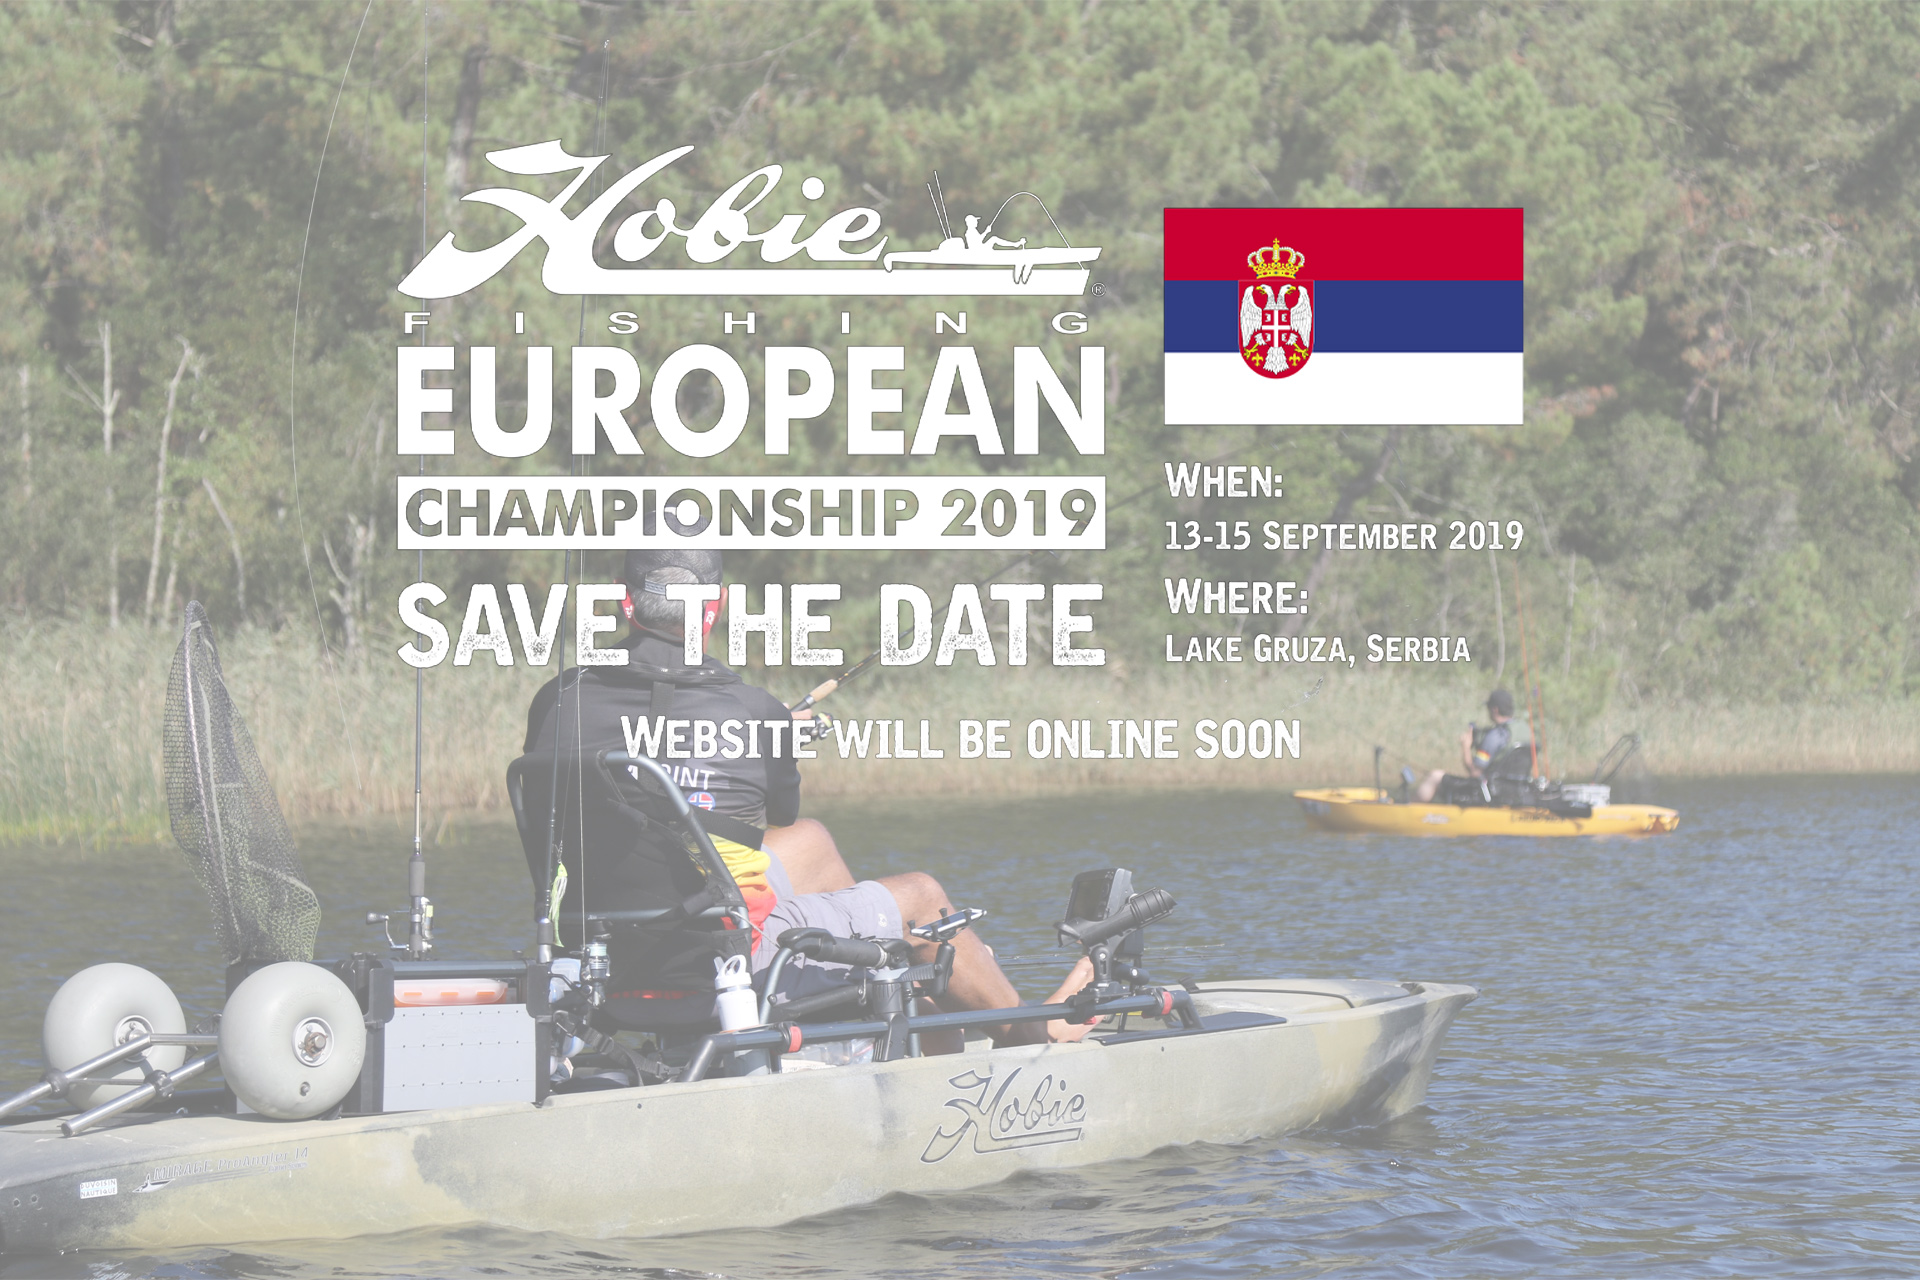 6th Hobie Fishing Euros